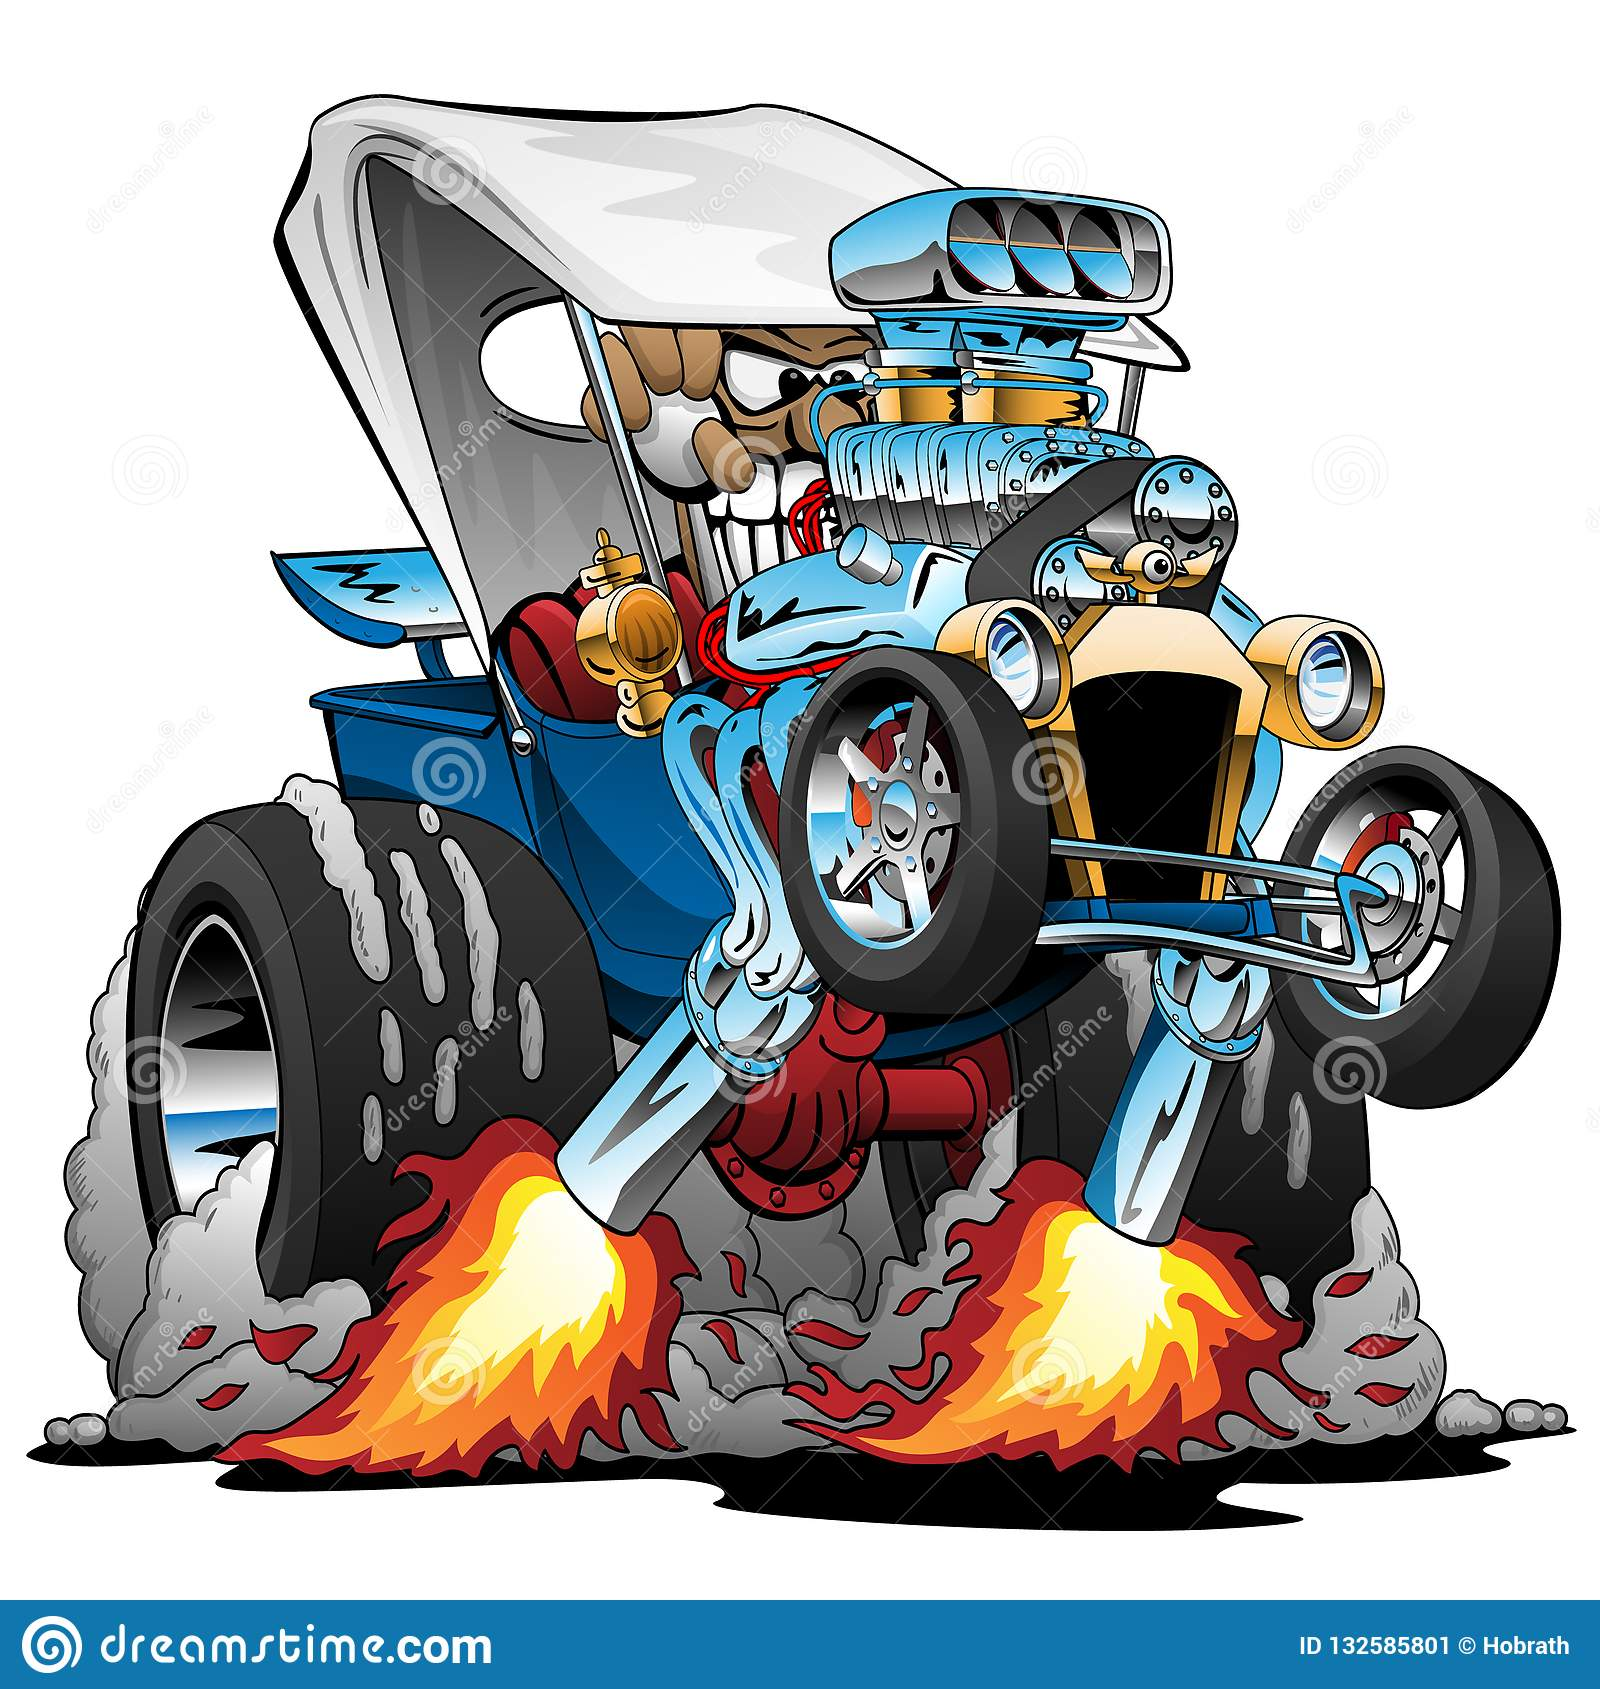 Custom T-bucket Roadster Hotrod Cartoon Vector Illustration